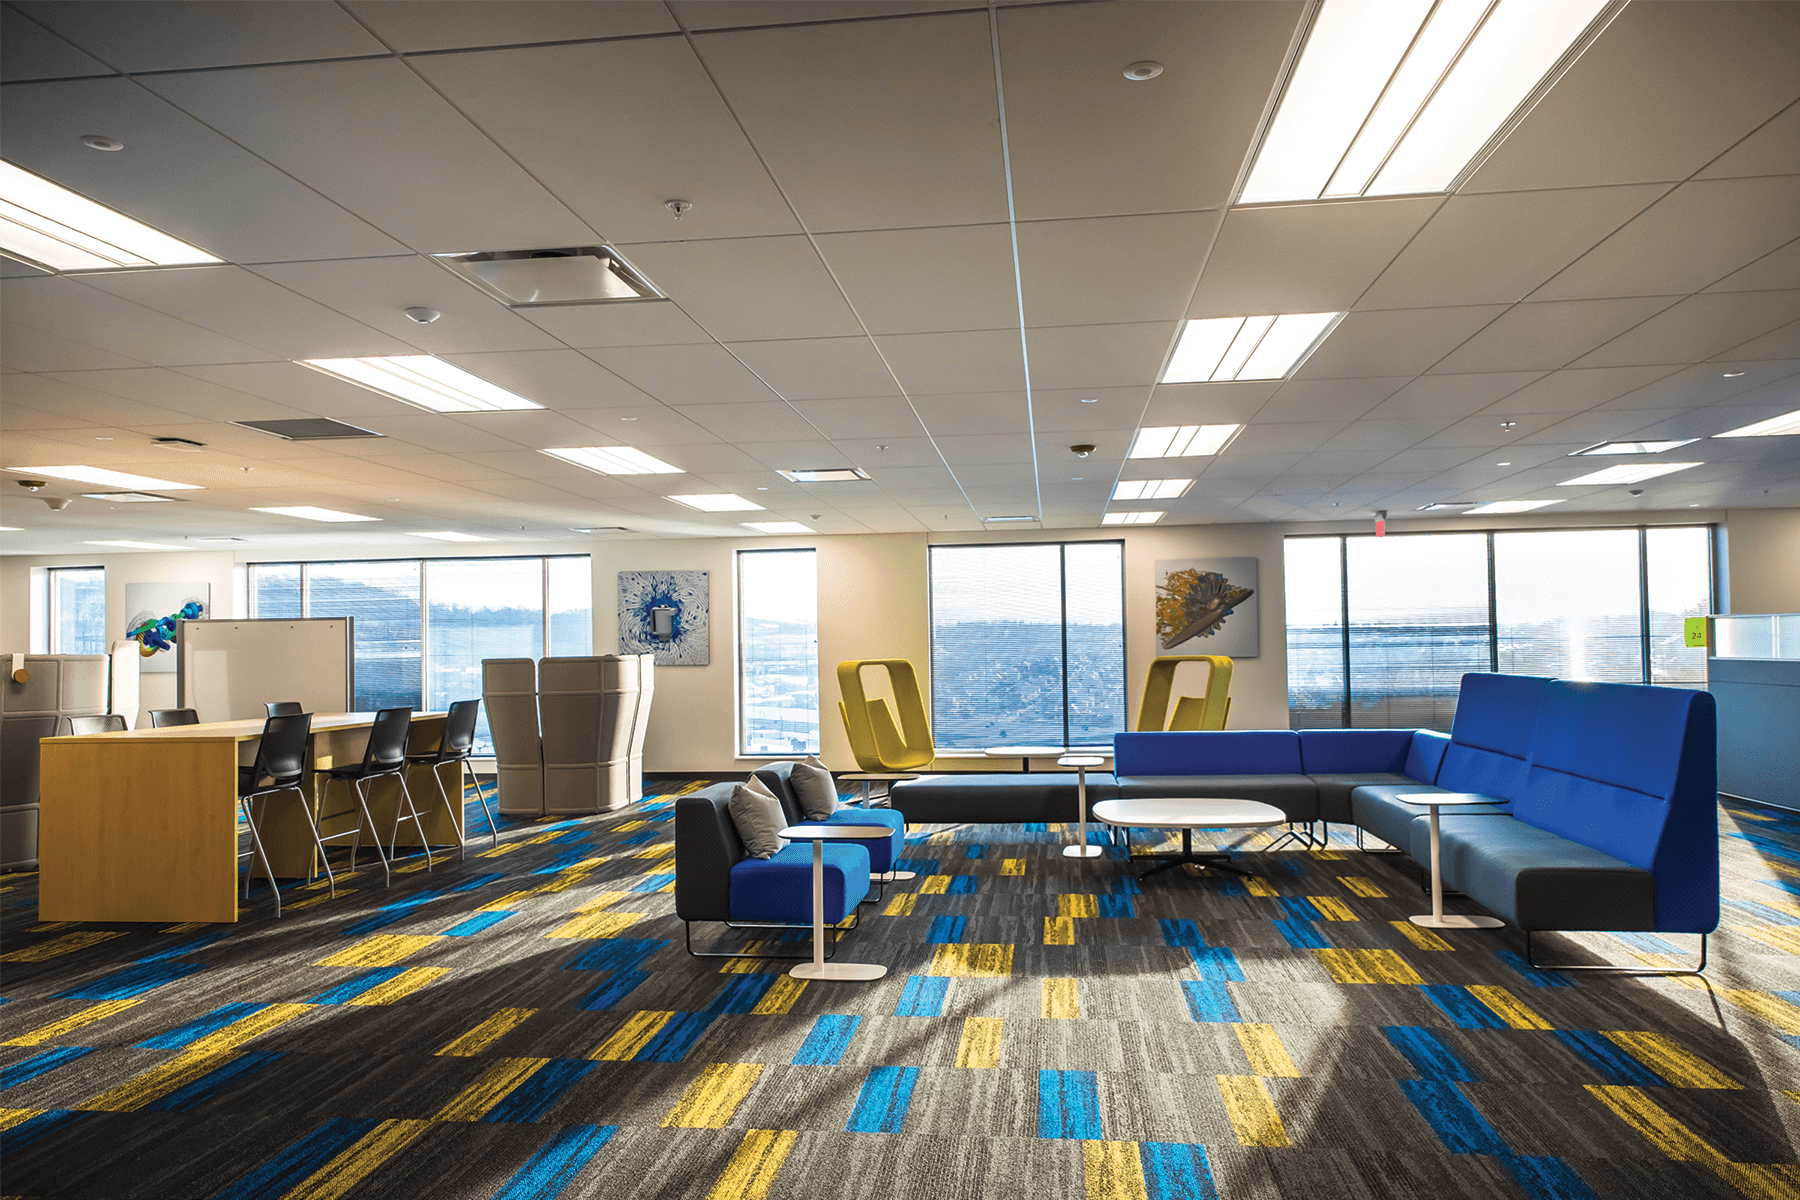 Office with blue, yellow, and gray furniture, and carpet, and large windows